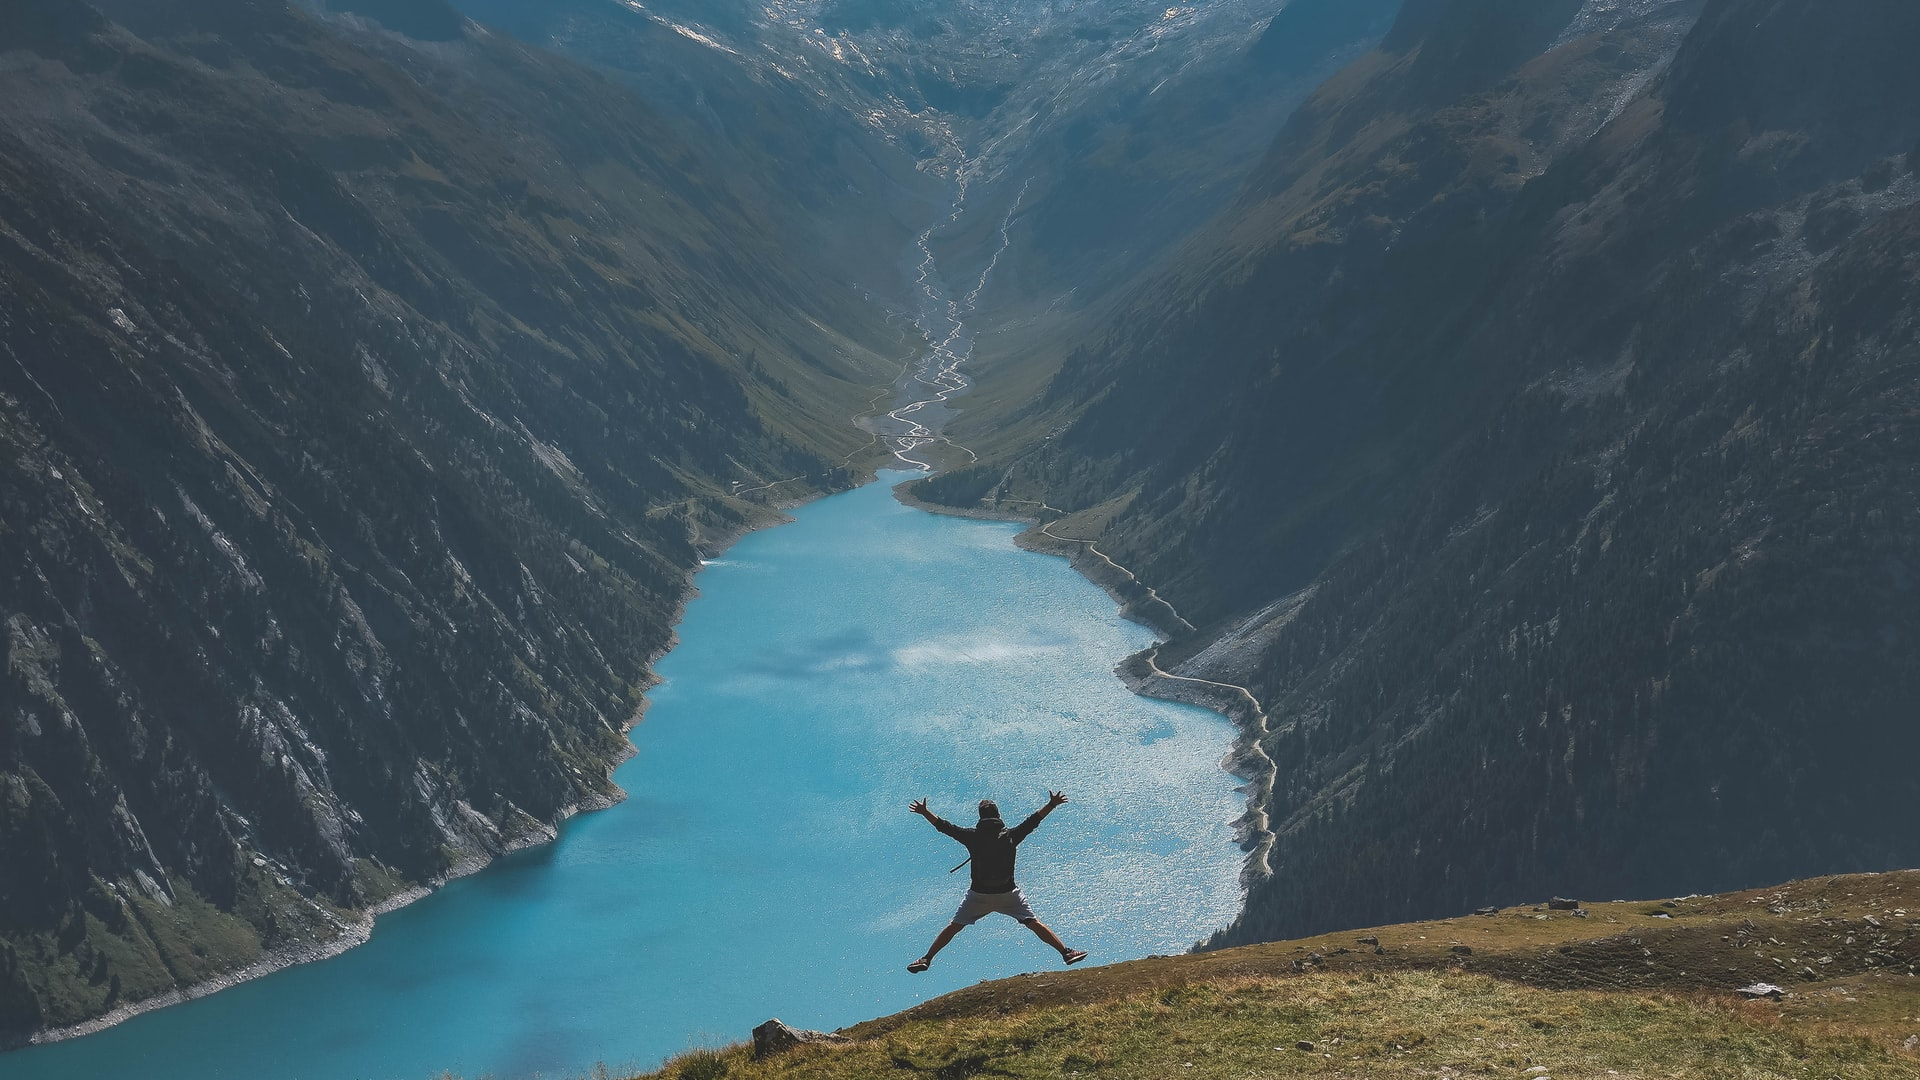 This image shows a man doing a star jump infront of a great lake.